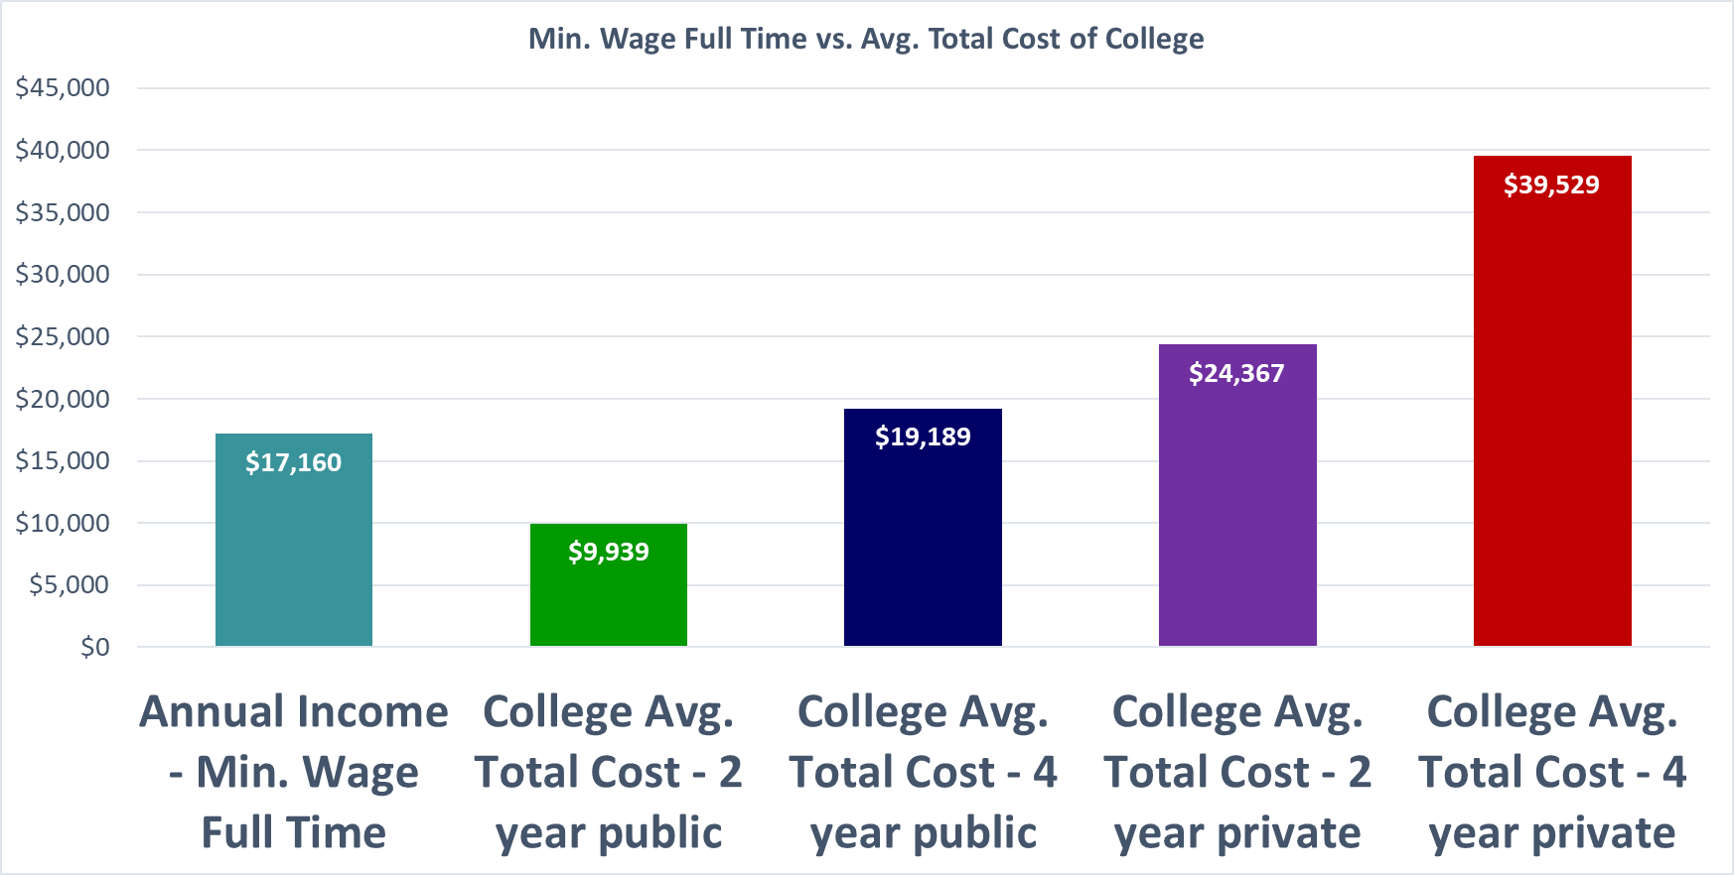 Annual full time income when making minimum wage vs. the Avg. Total Cost of College